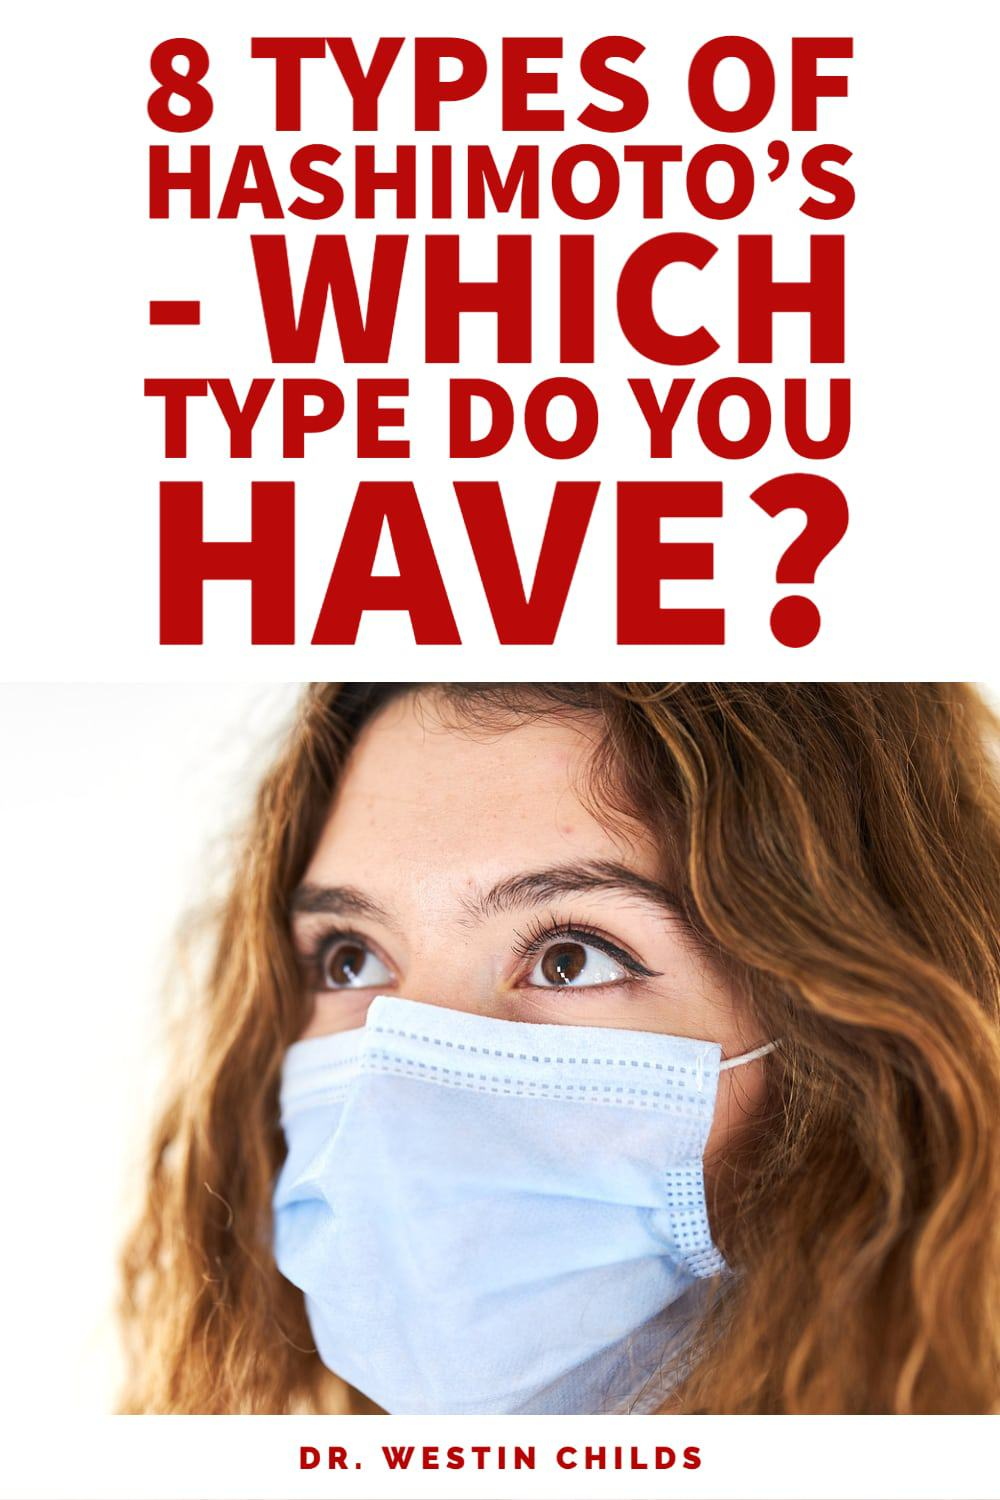 8 types of hashimoto's thyroiditis - which one do you have?